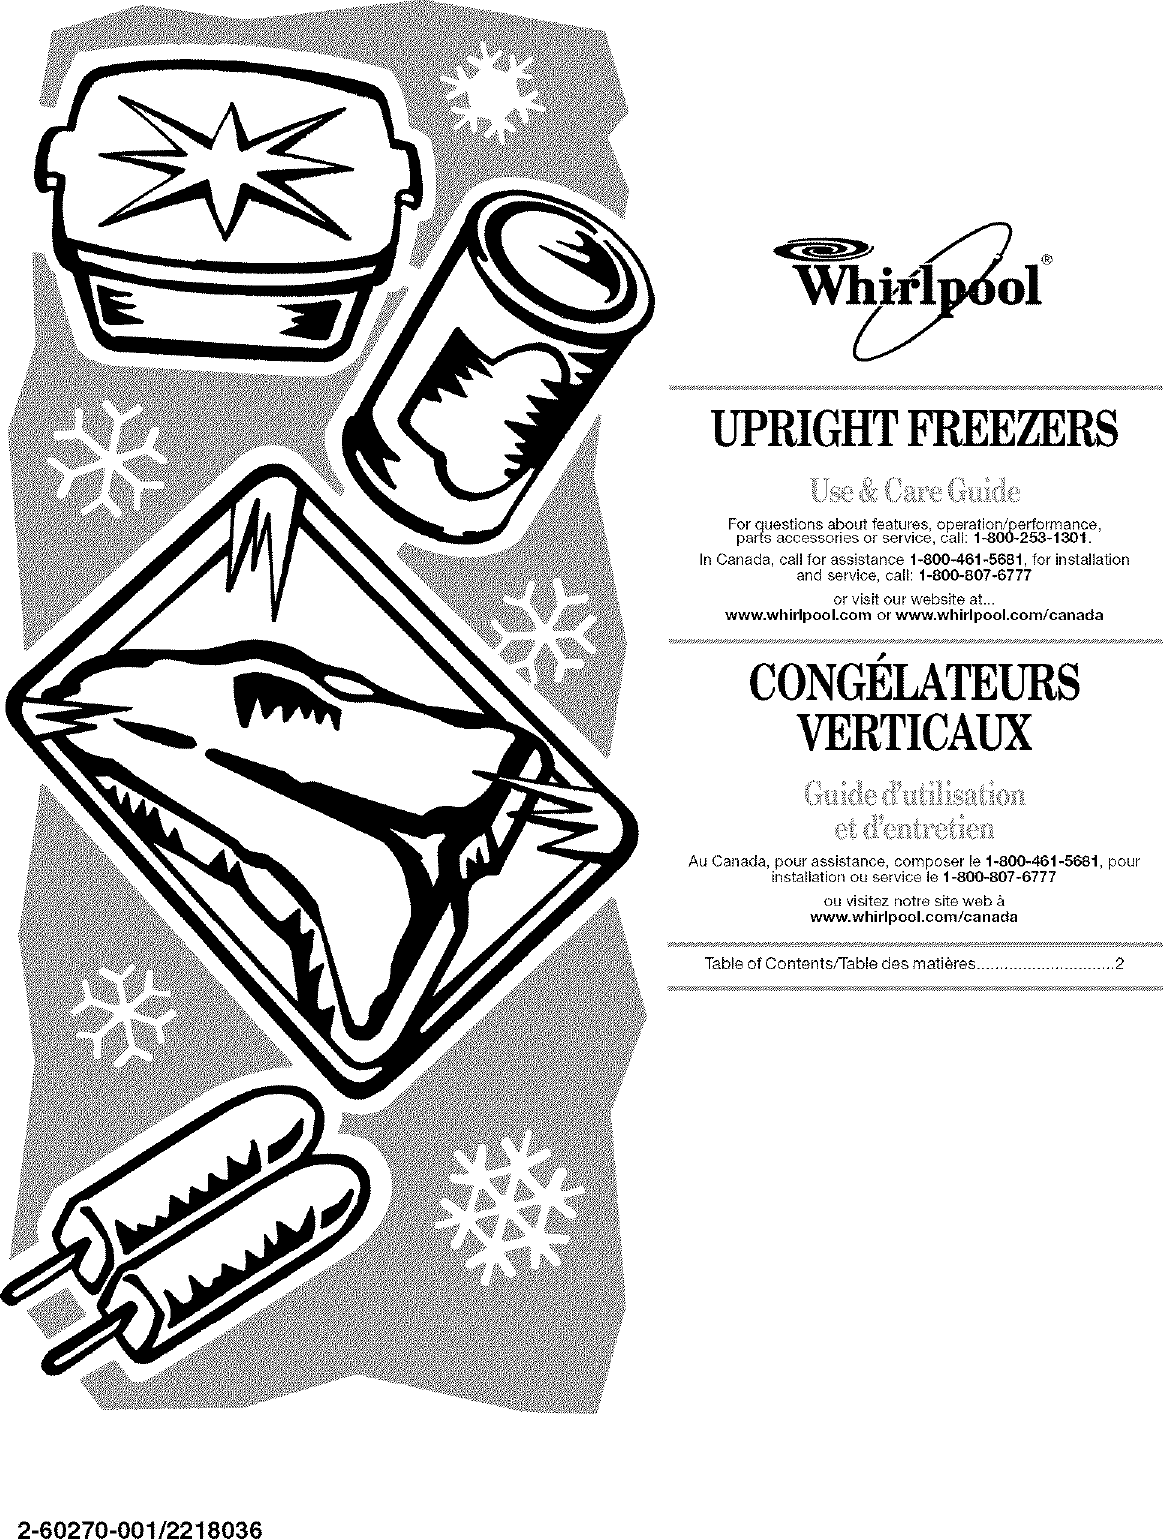 Whirlpool Upright Freezer Wiring Diagram Commercial Ge Tpx24ppda Wire Ev170nyls00 User Manual Manuals And Guides On